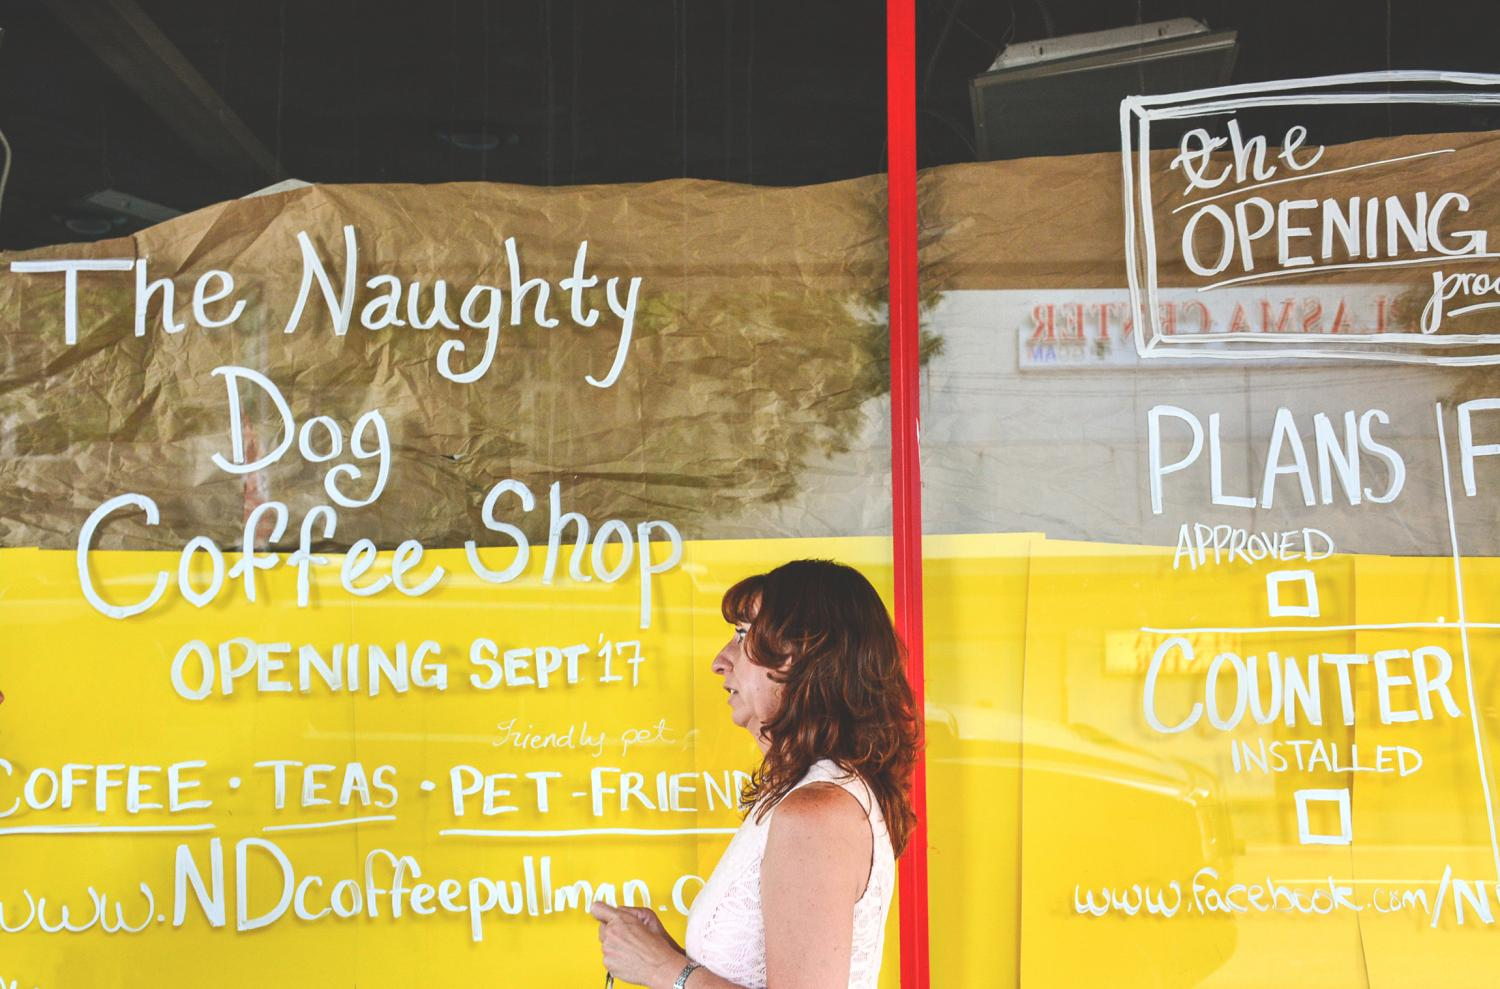 Co-owner Andrea Tubens talks about her business plans and pet-friendly ideas for The Naughty Dog Coffee Shop.  The shop-dog is an English bulldog named Venus, who will be at the shop for anyone to stop by for a friendly hello.